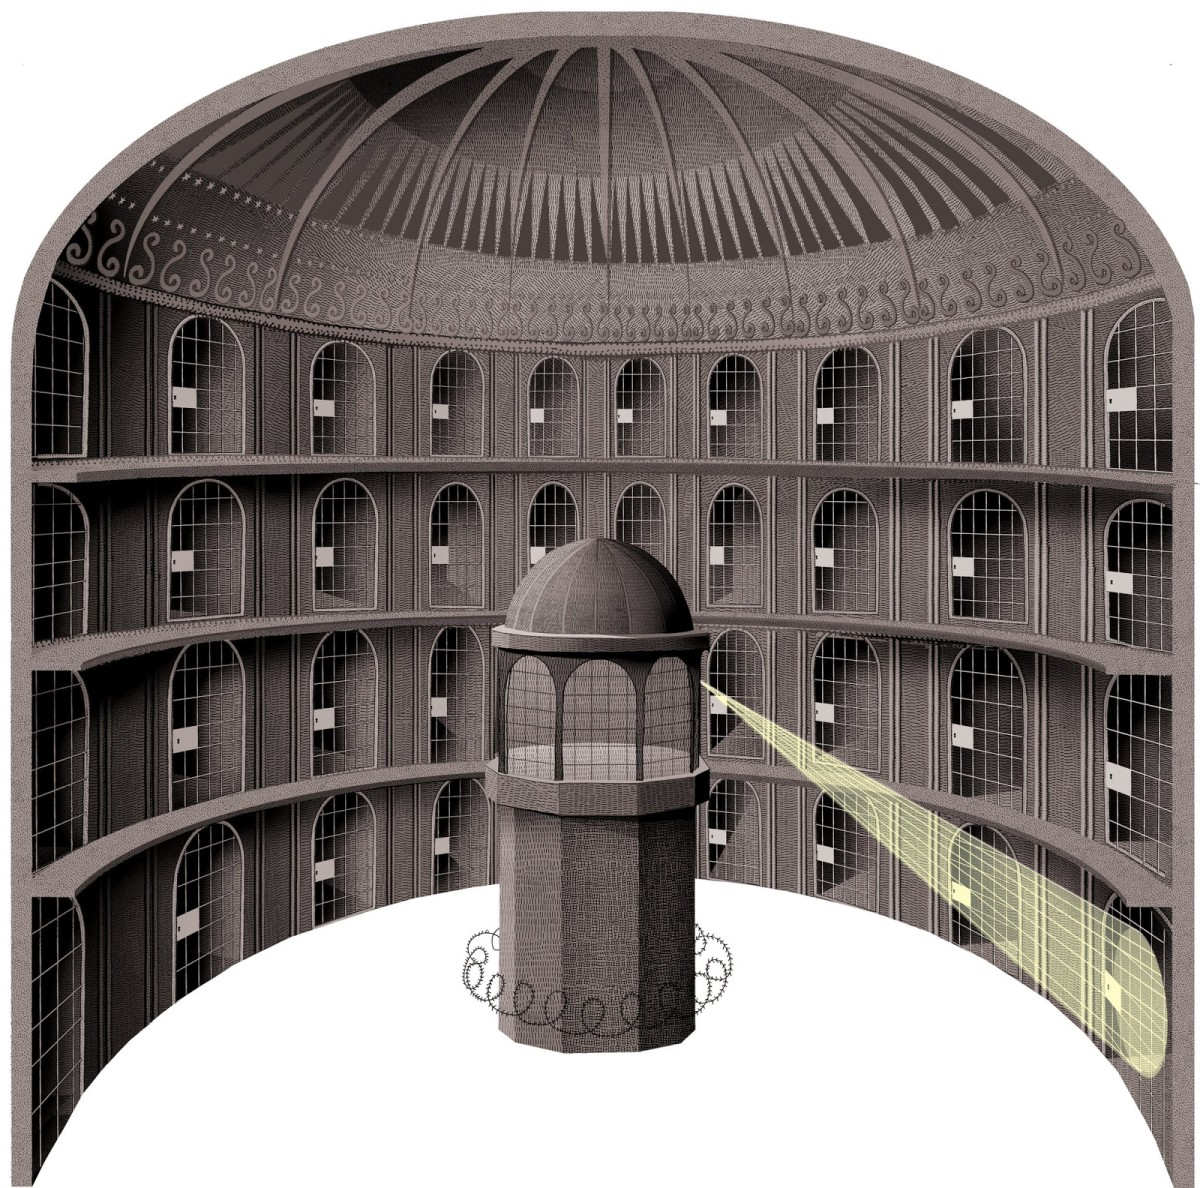 Bentham's dream of control: the Panopticon